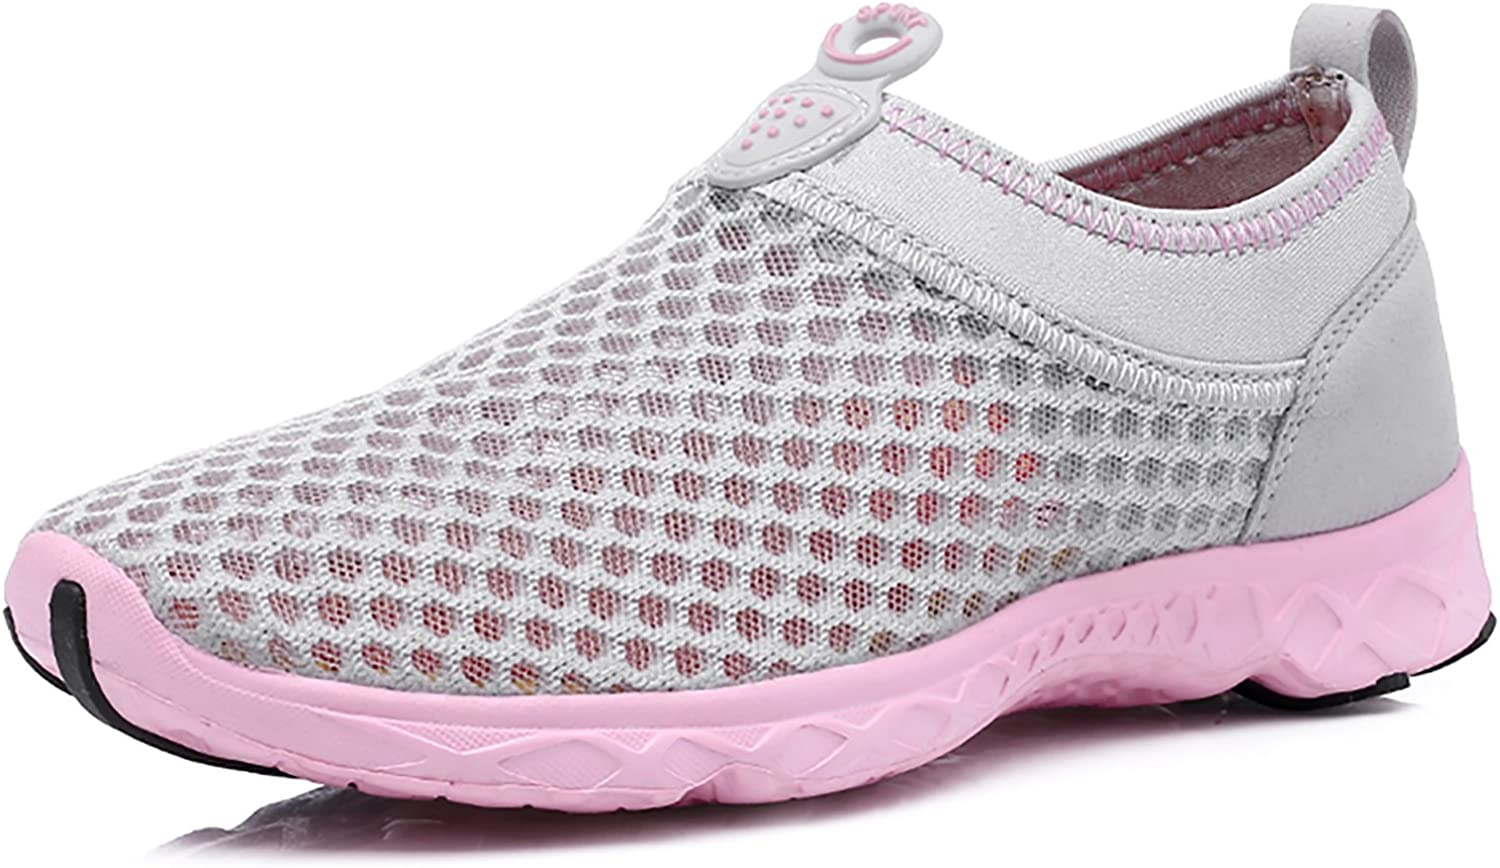 Go Tour Women's QuickDry Slip on Water shoes Leisure Outdoor Lightweight Walking shoes